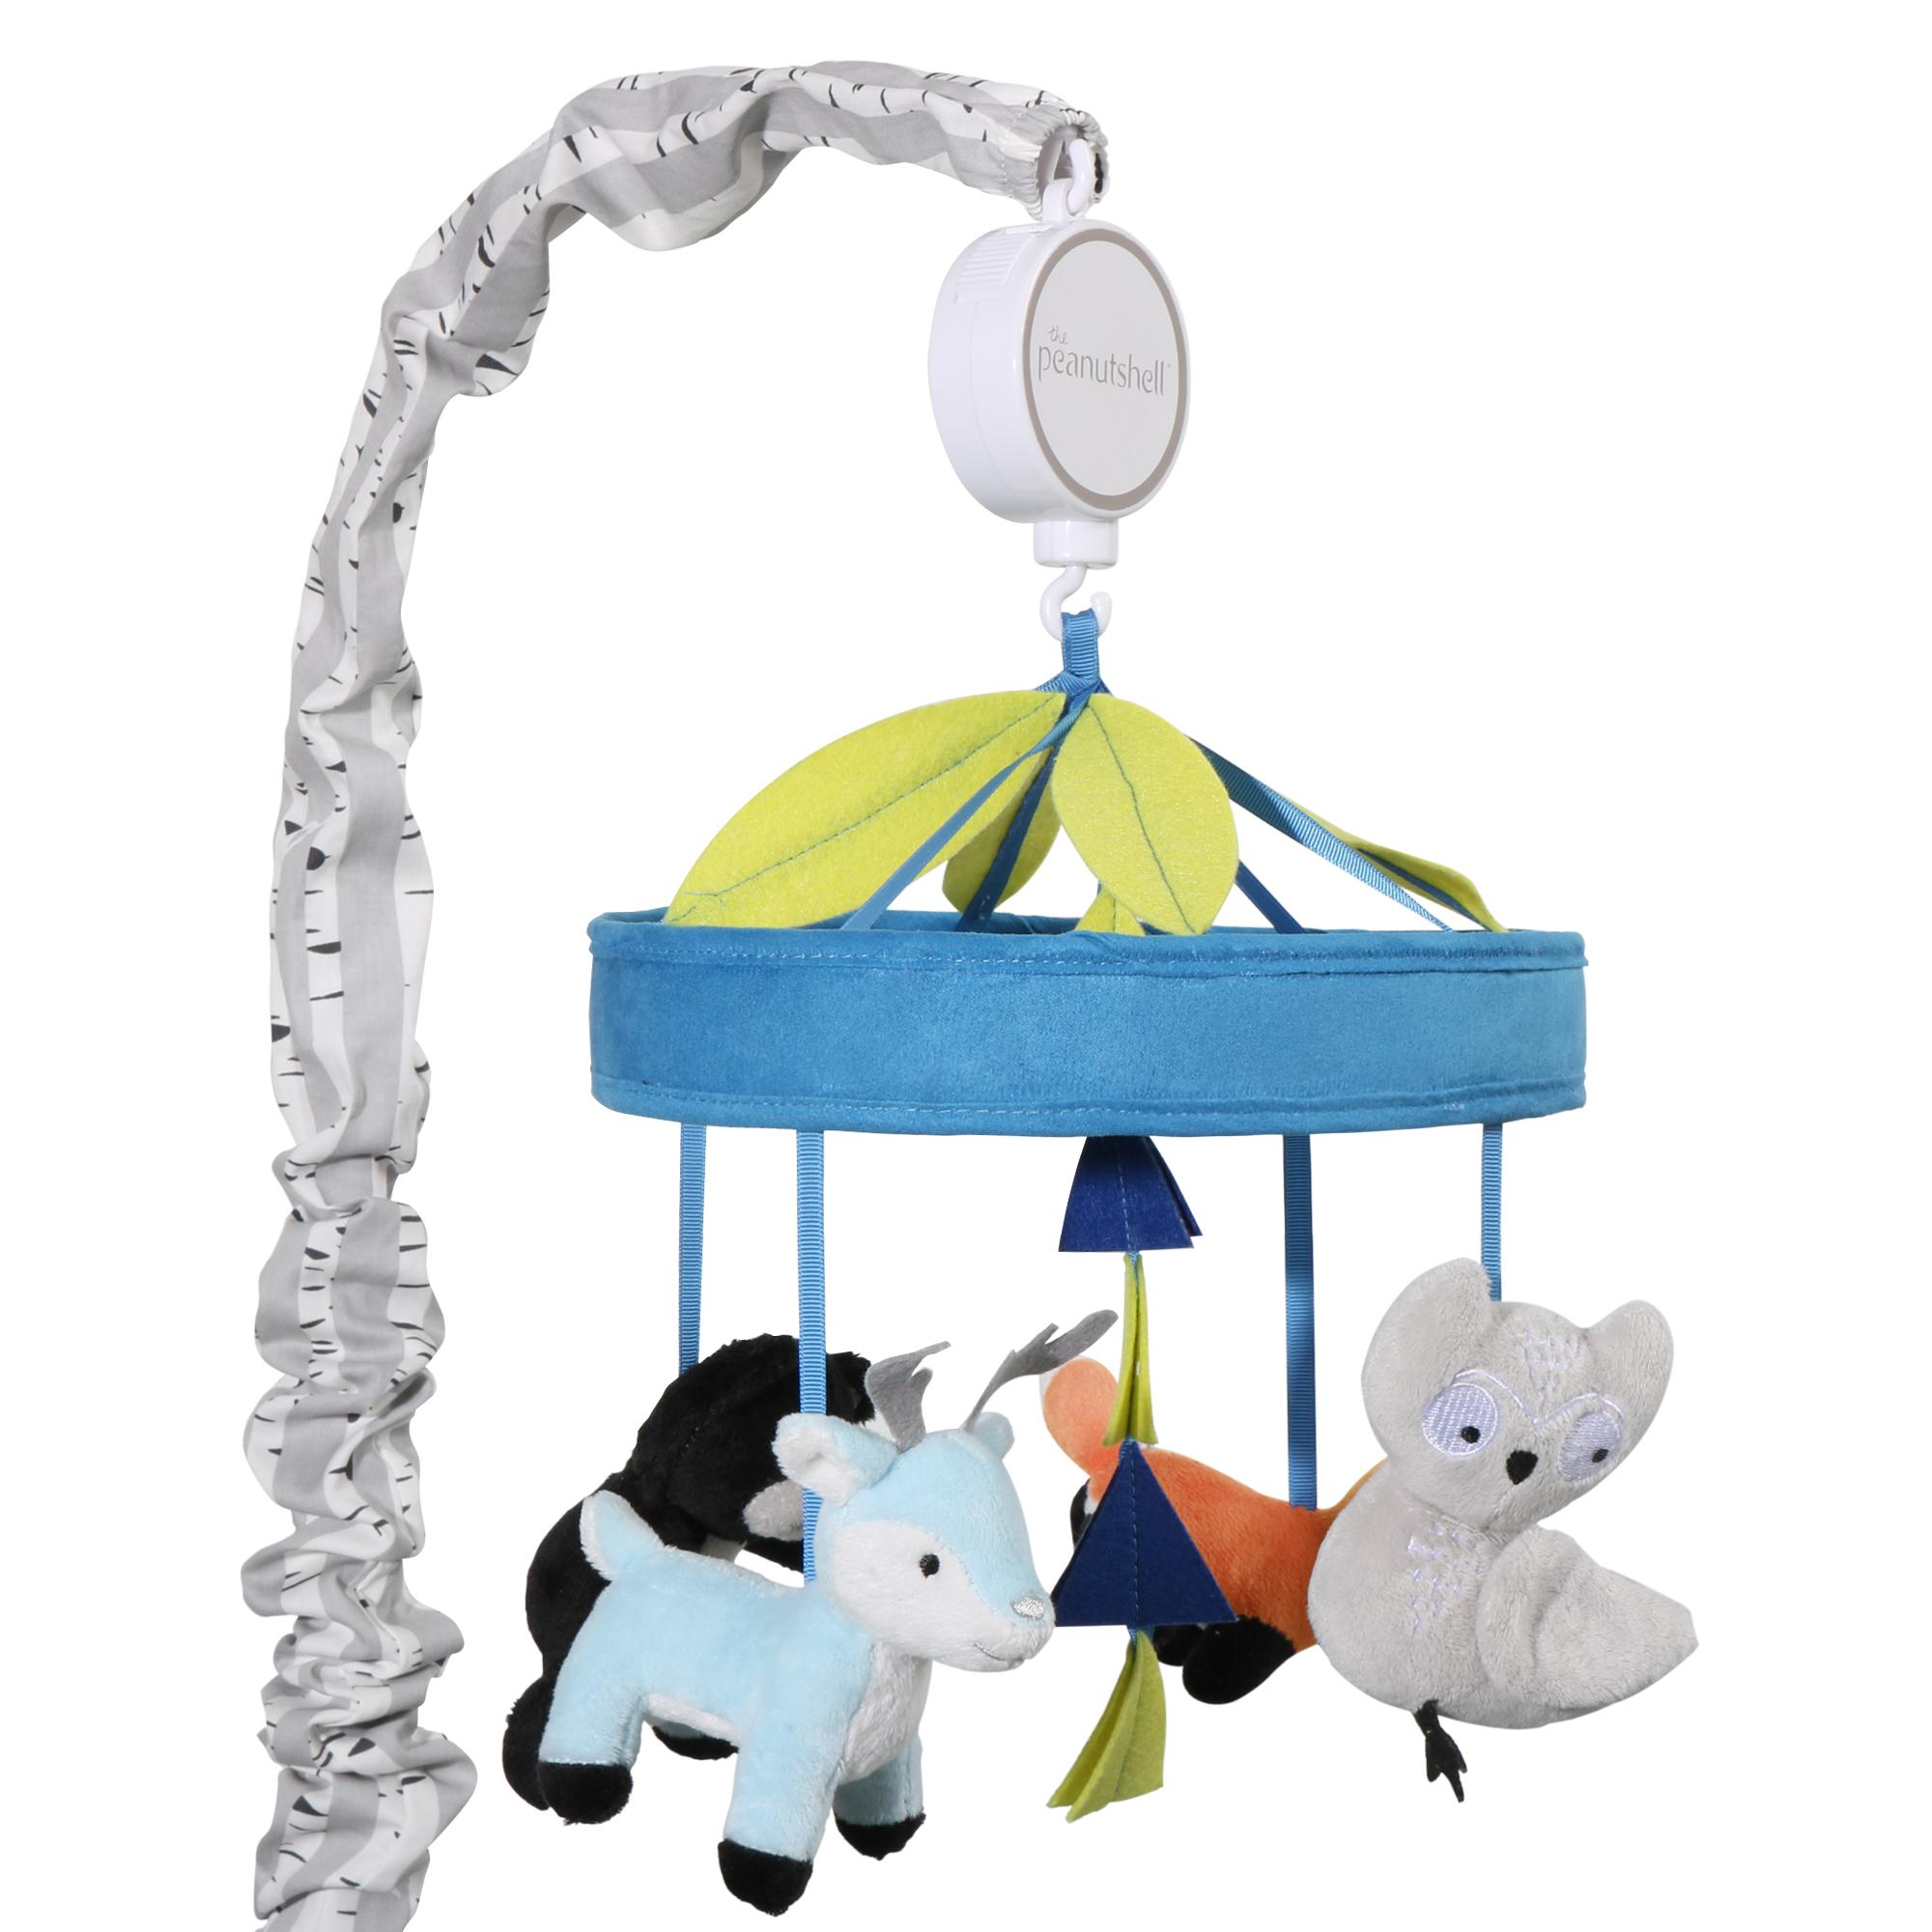 woodland dreams musical mobile - the woodland dreams musical mobile features adorable forest animals ongrosgrain ribbons it plays a gentle lullaby to soothe your baby to sleep